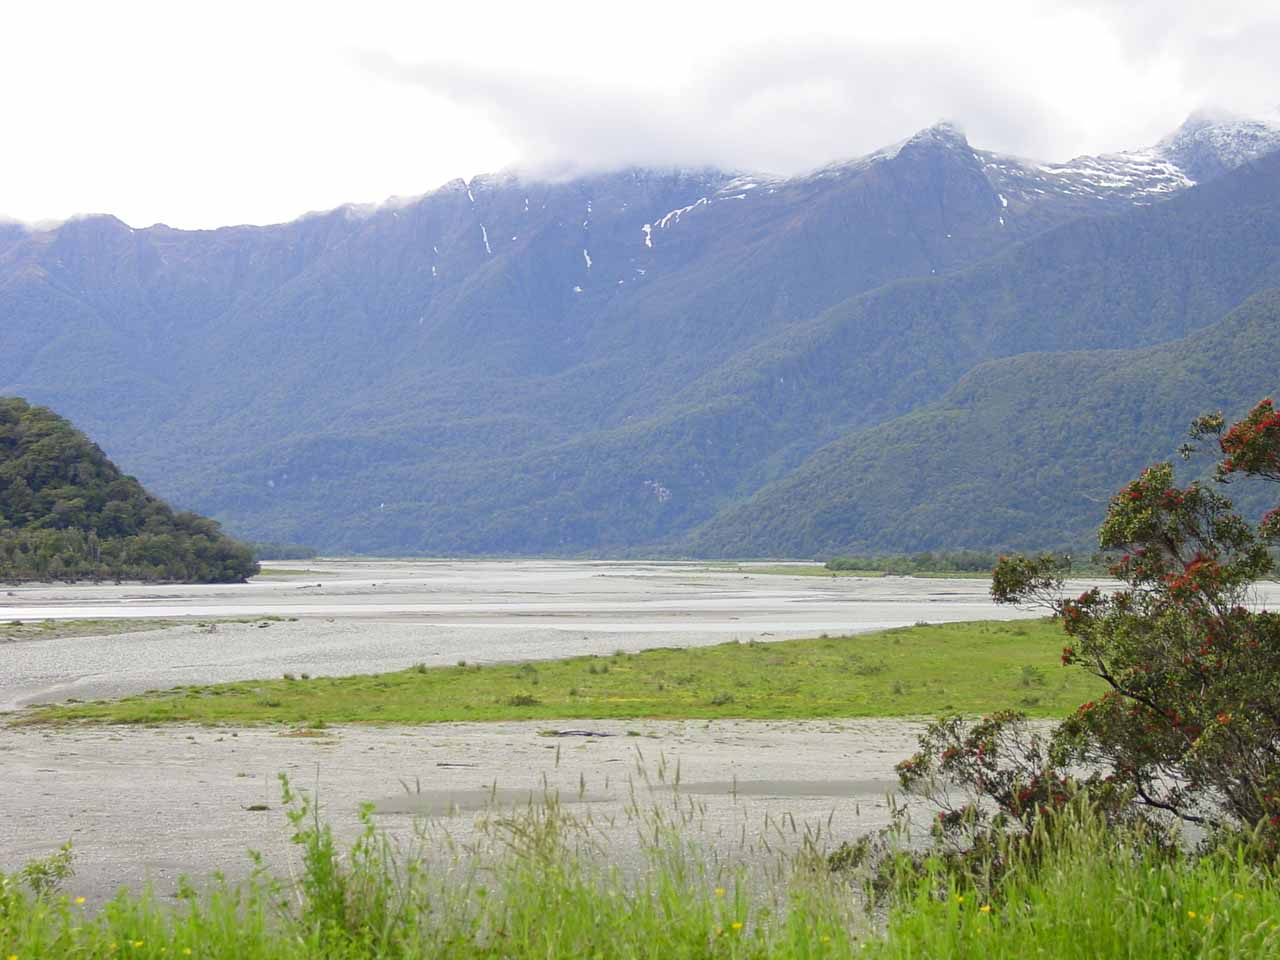 This was the view of the Haast River Valley back in 2004 as we were entering it on the way to Roaring Billy Falls (among other waterfalls here)